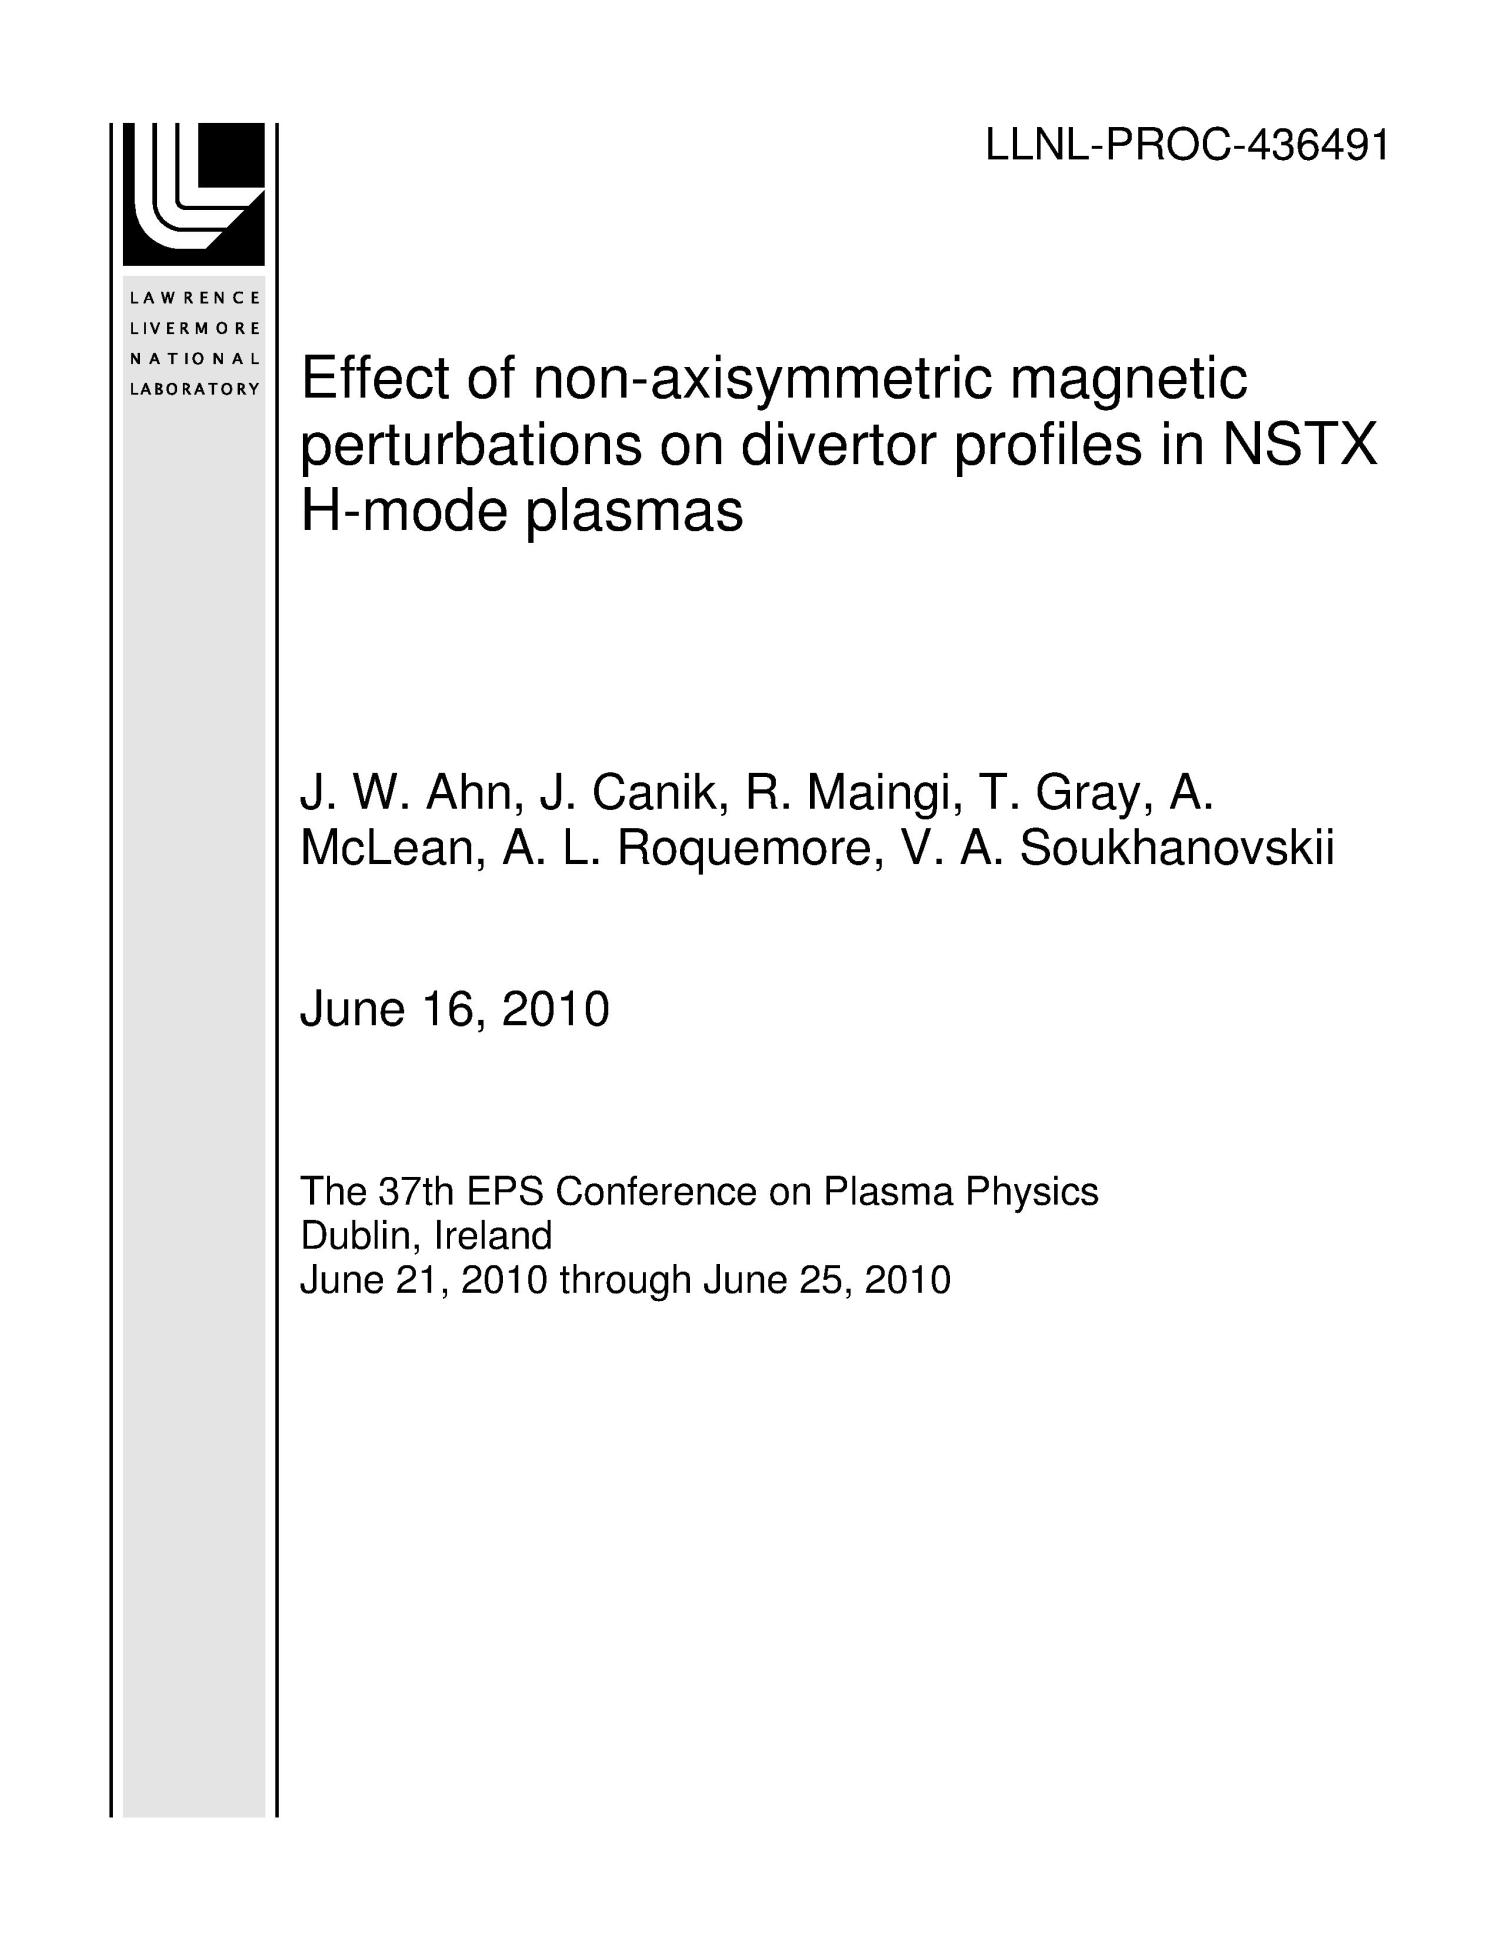 Effect of non-axisymmetric magnetic perturbations on divertor profiles in NSTX H-mode plasmas                                                                                                      [Sequence #]: 1 of 6